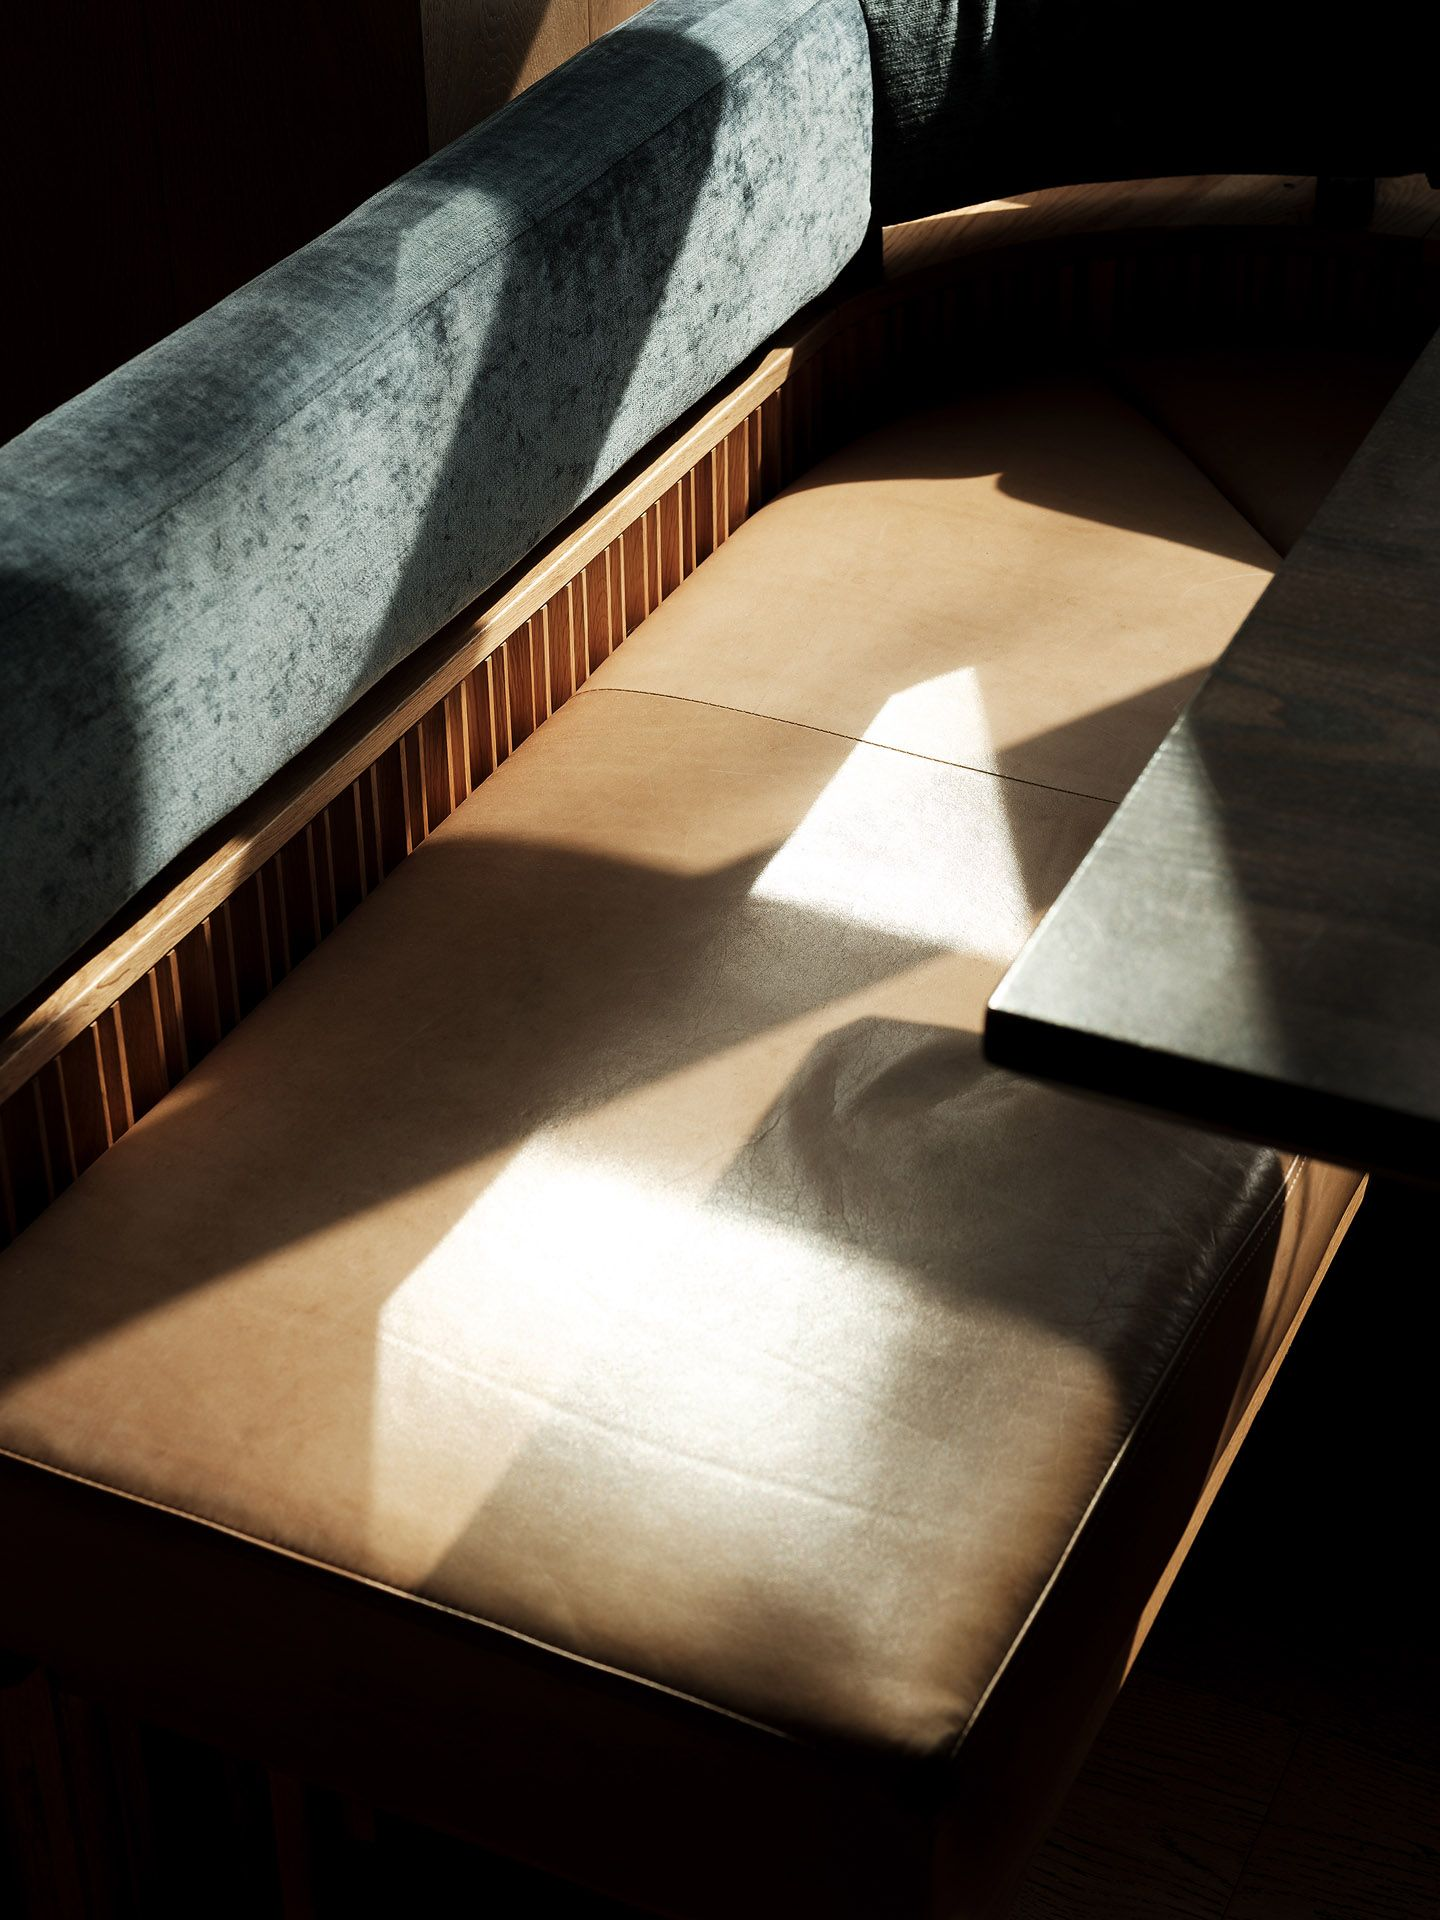 booth bench with ray on sun on the caramel leather seat and black table by Guillaume Simoneau at MRDK for NUVO